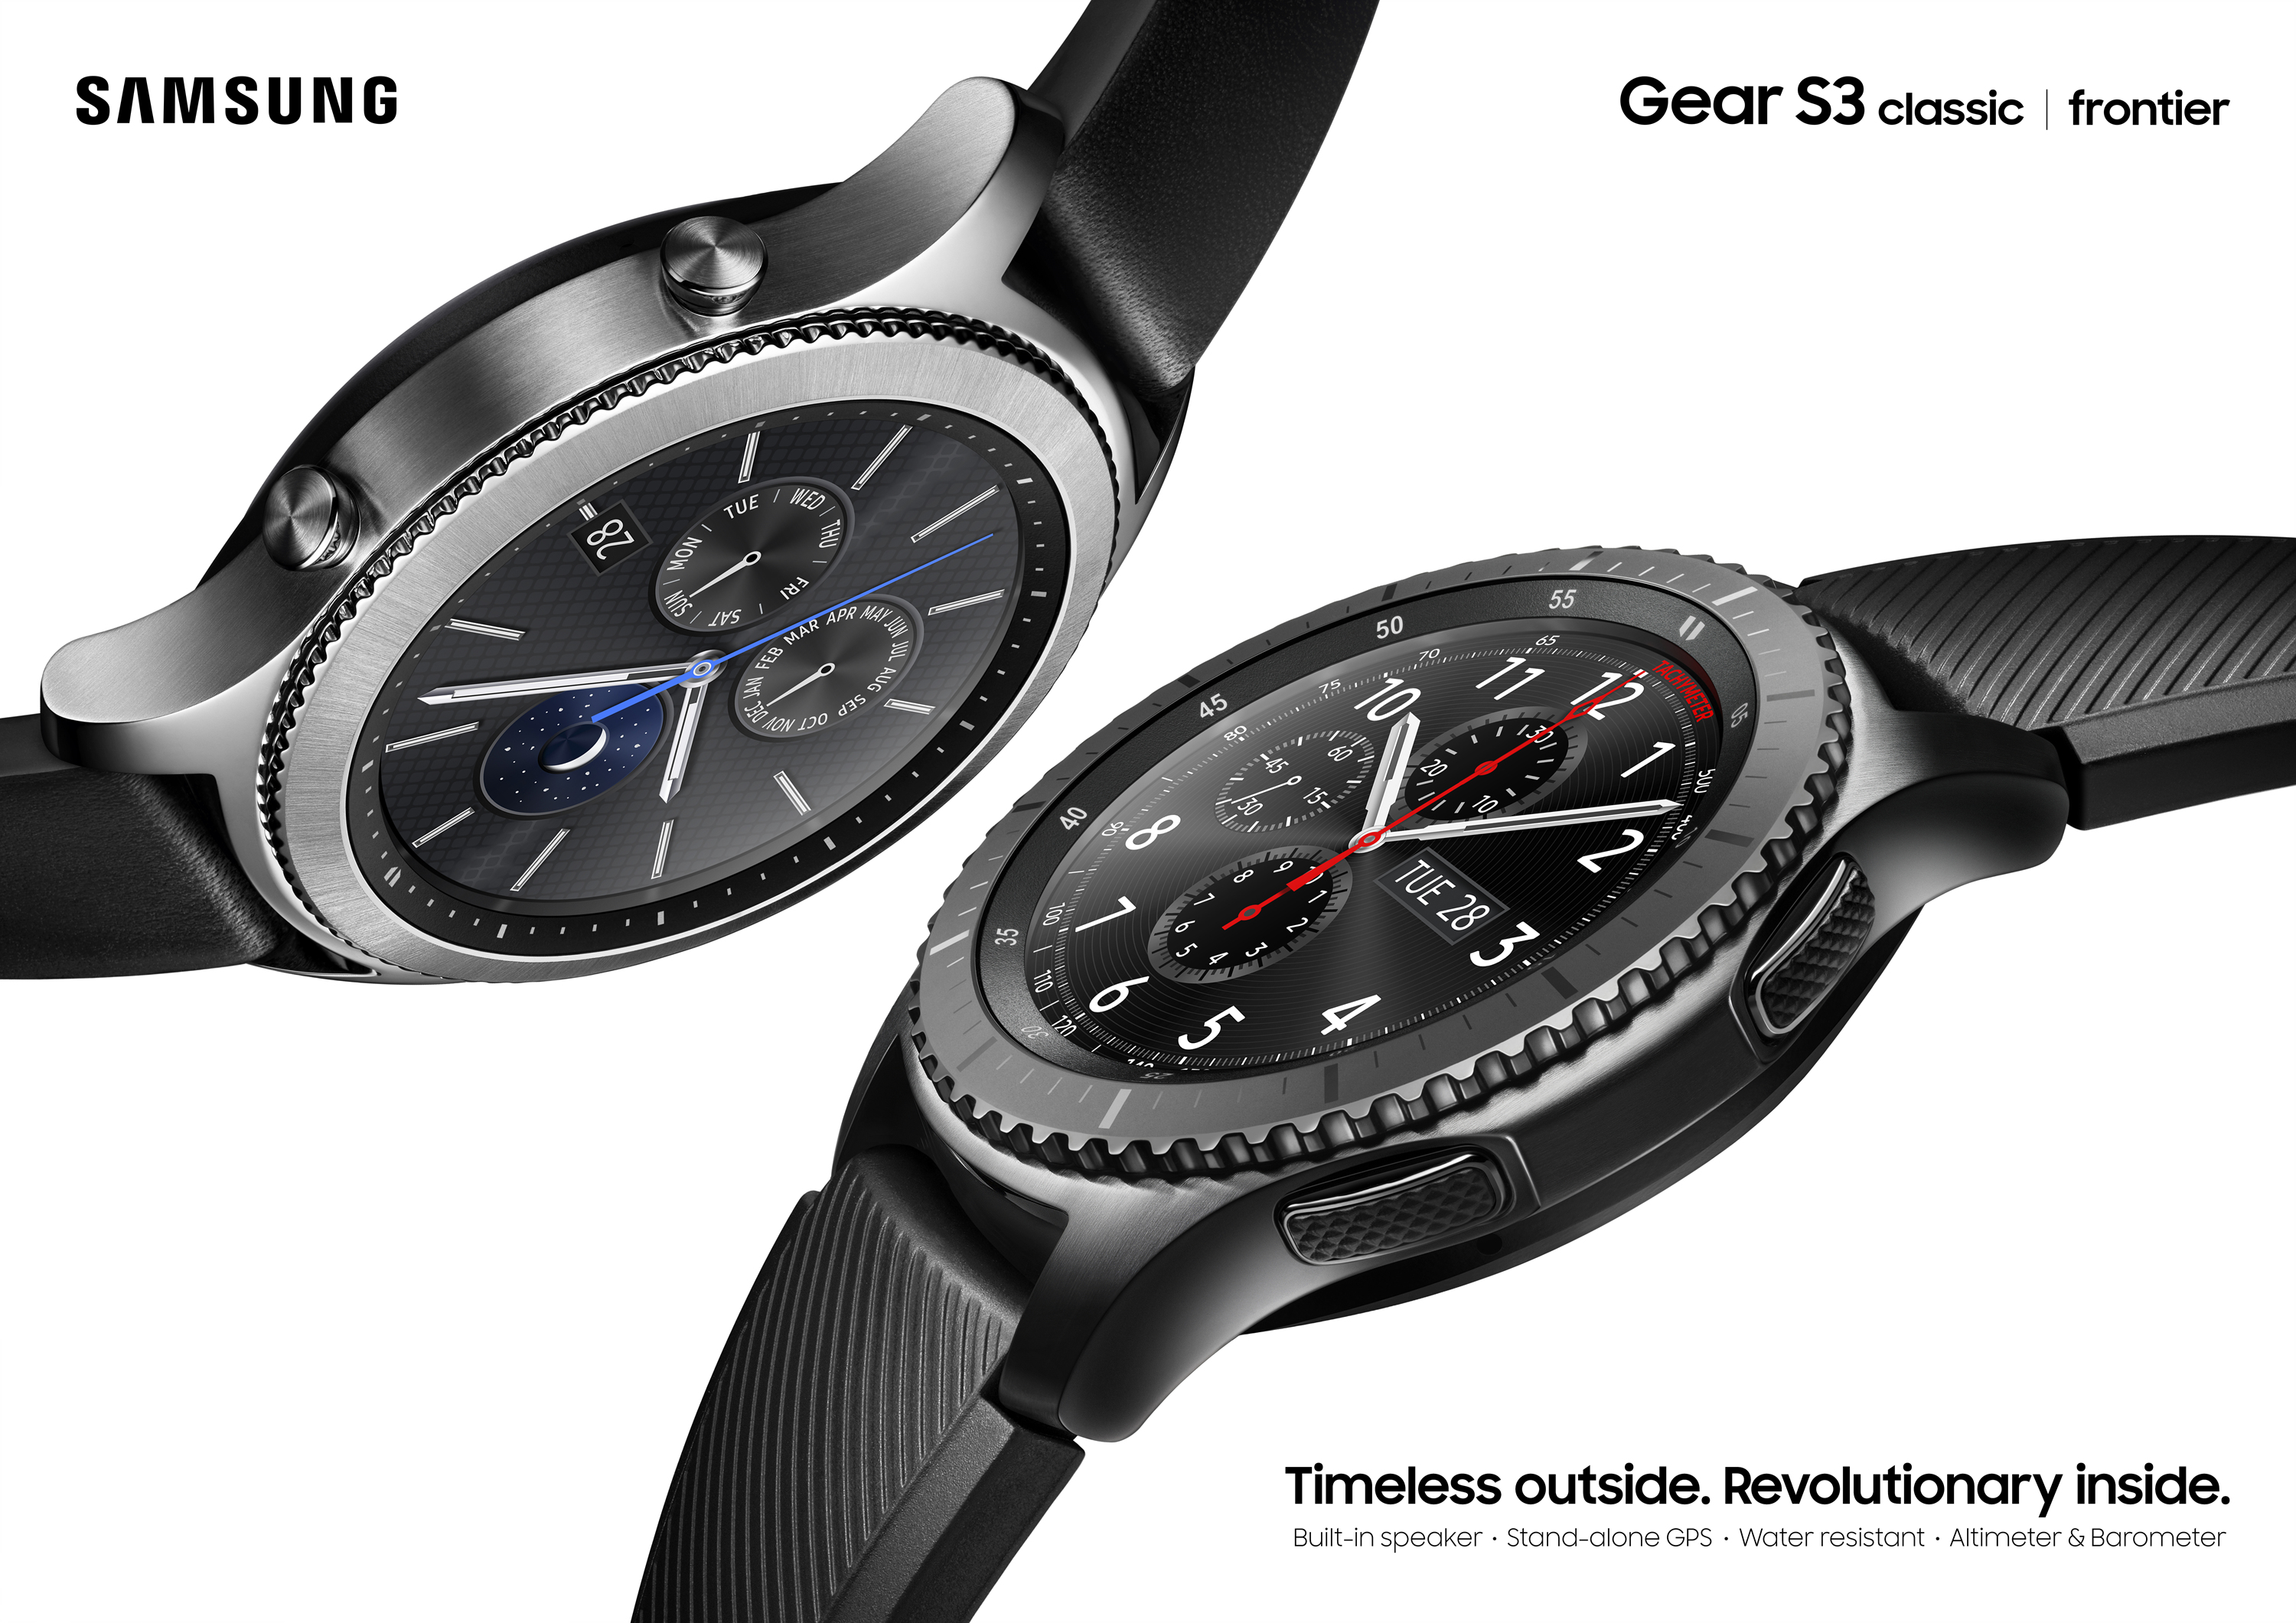 that smartwatches last temptingly years say on top well few at done you not fair to pull it and smartwatch looking have trigger these smart s mens news market watches been if the